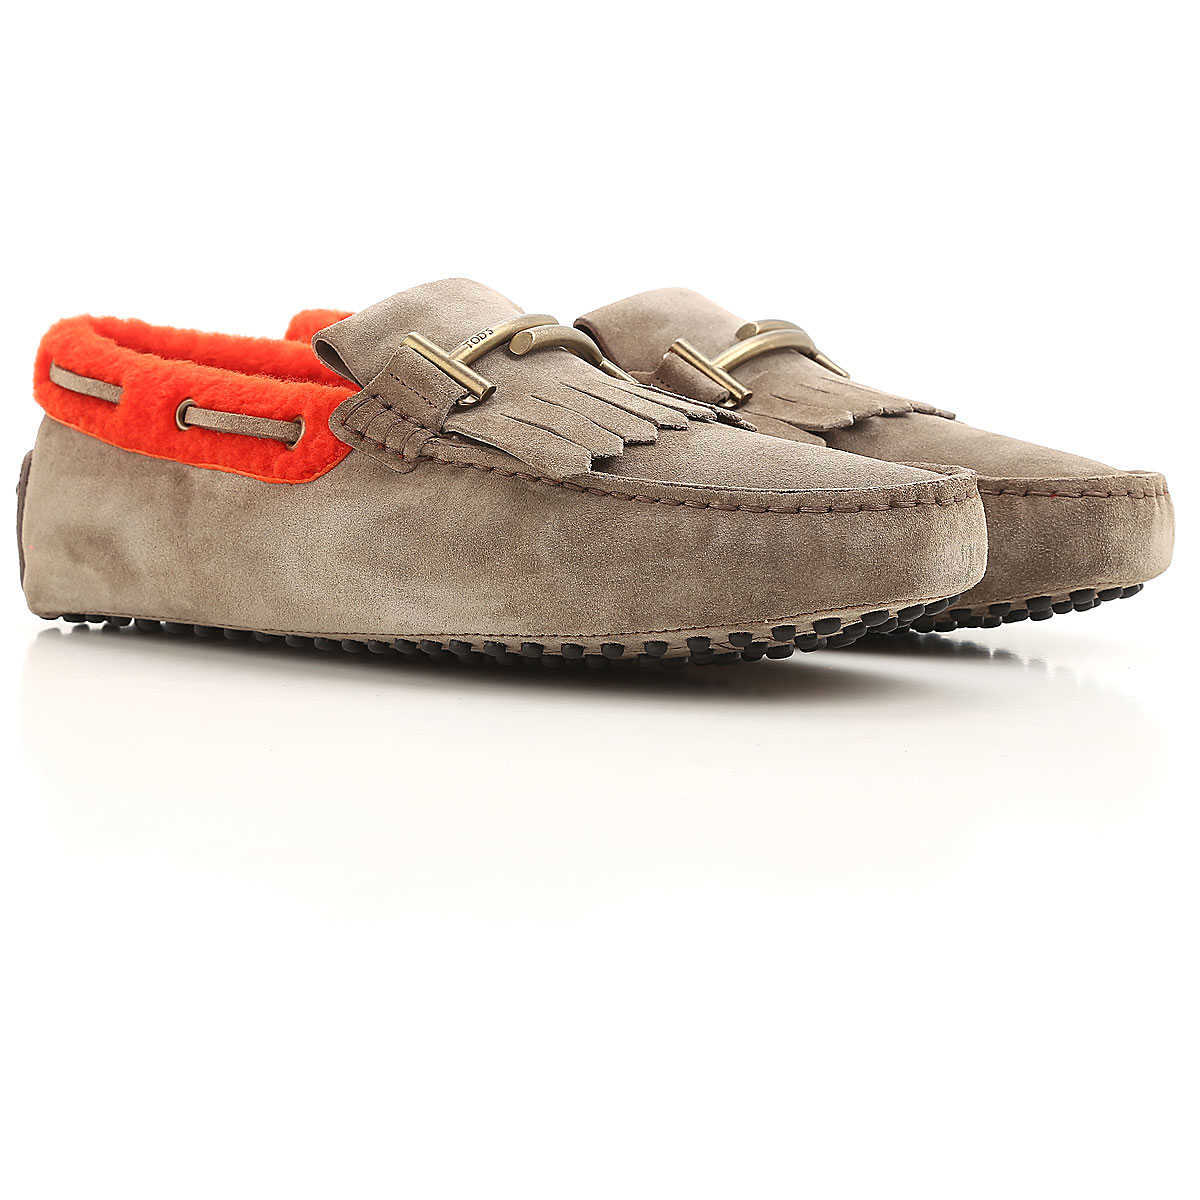 Tods Loafers for Men Tortoise Canada - GOOFASH - Mens LOAFERS